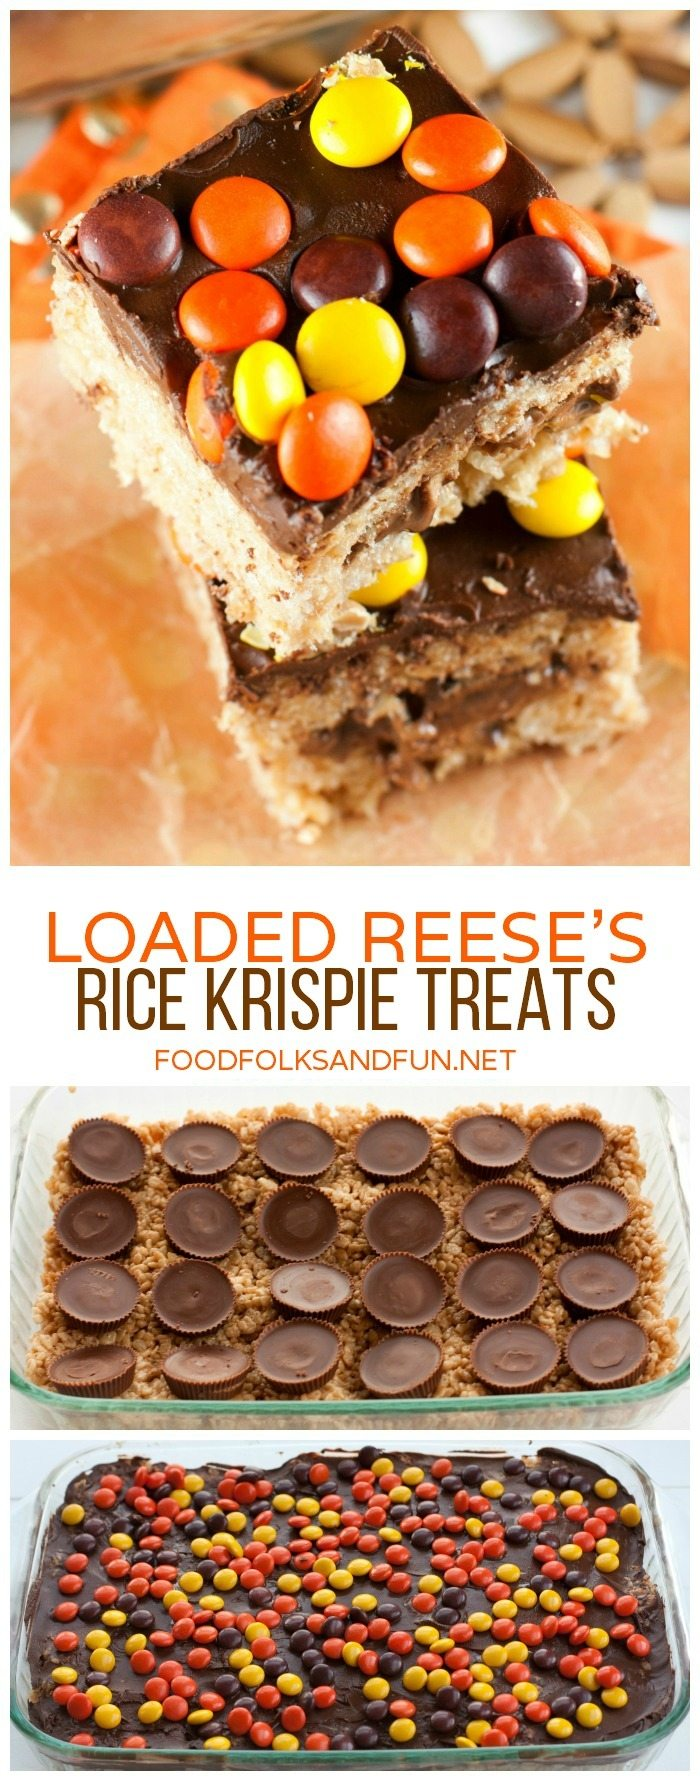 Loaded Reese's Rice Krispie Treats stacked on top of each other and in the pan.